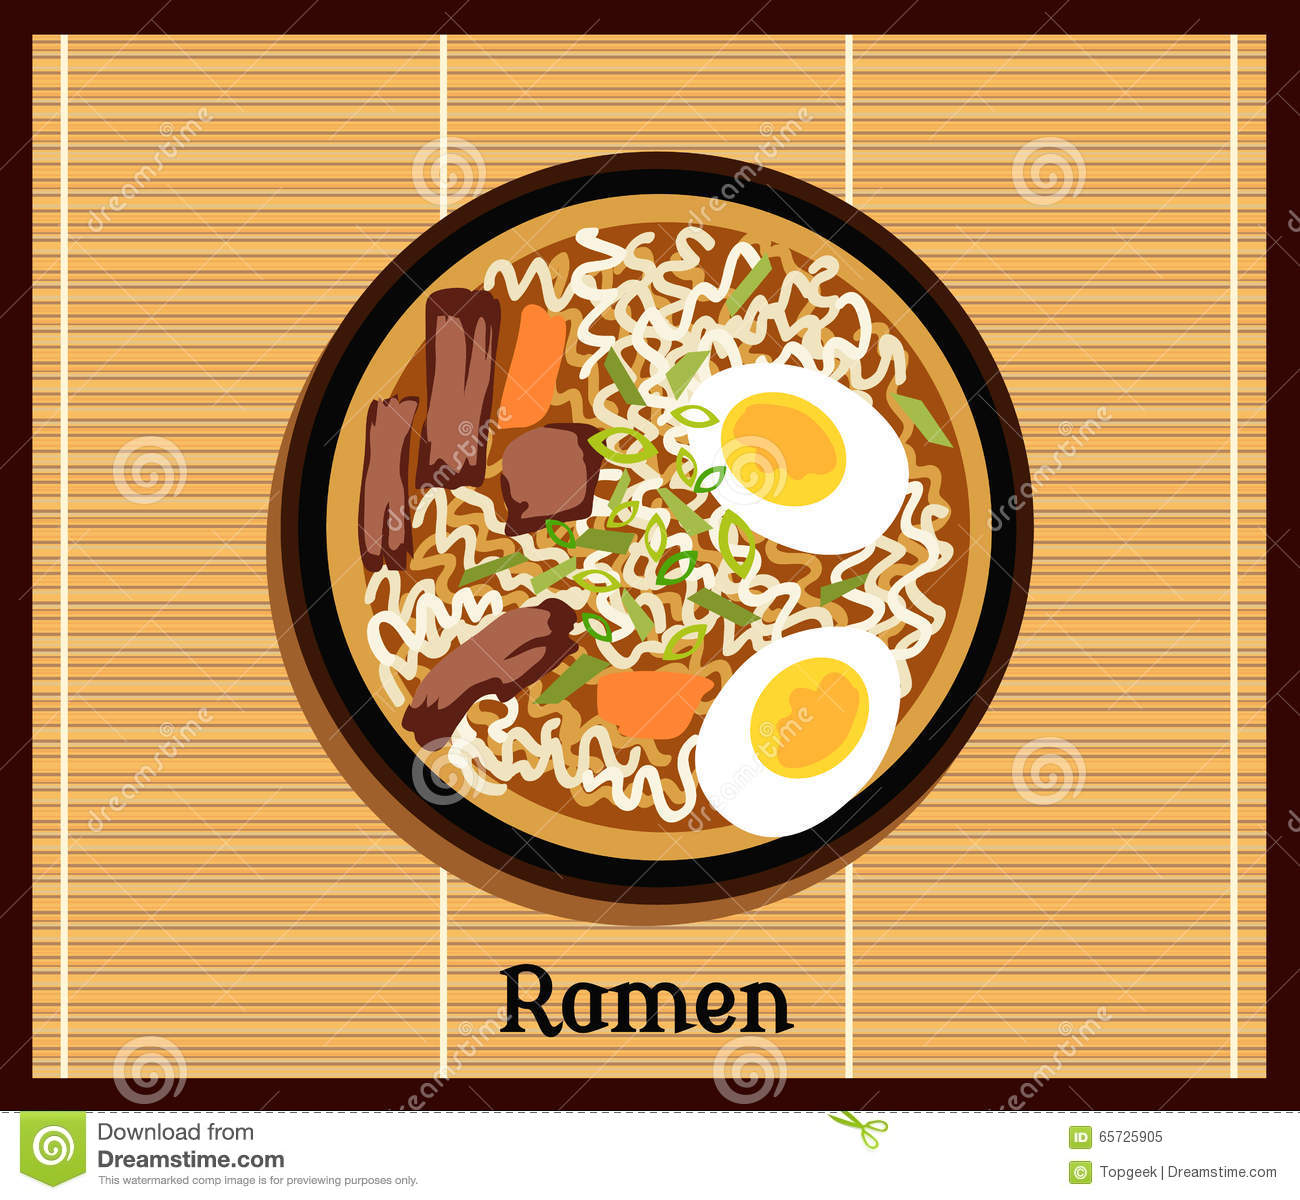 Ramen business plan